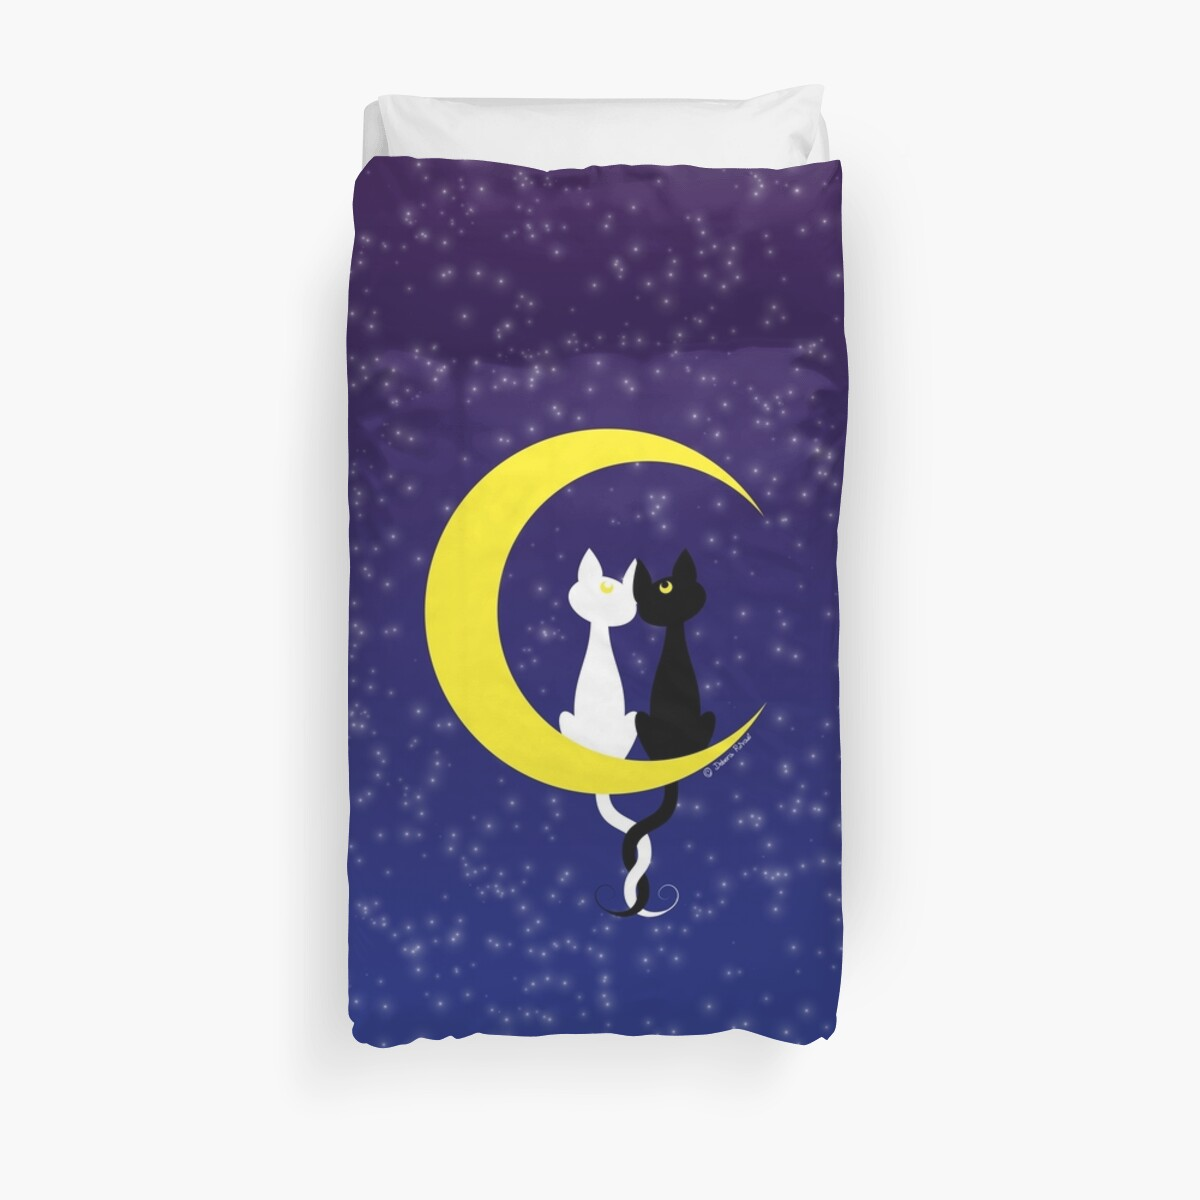 Cats in love on the moon by SilveryDreams